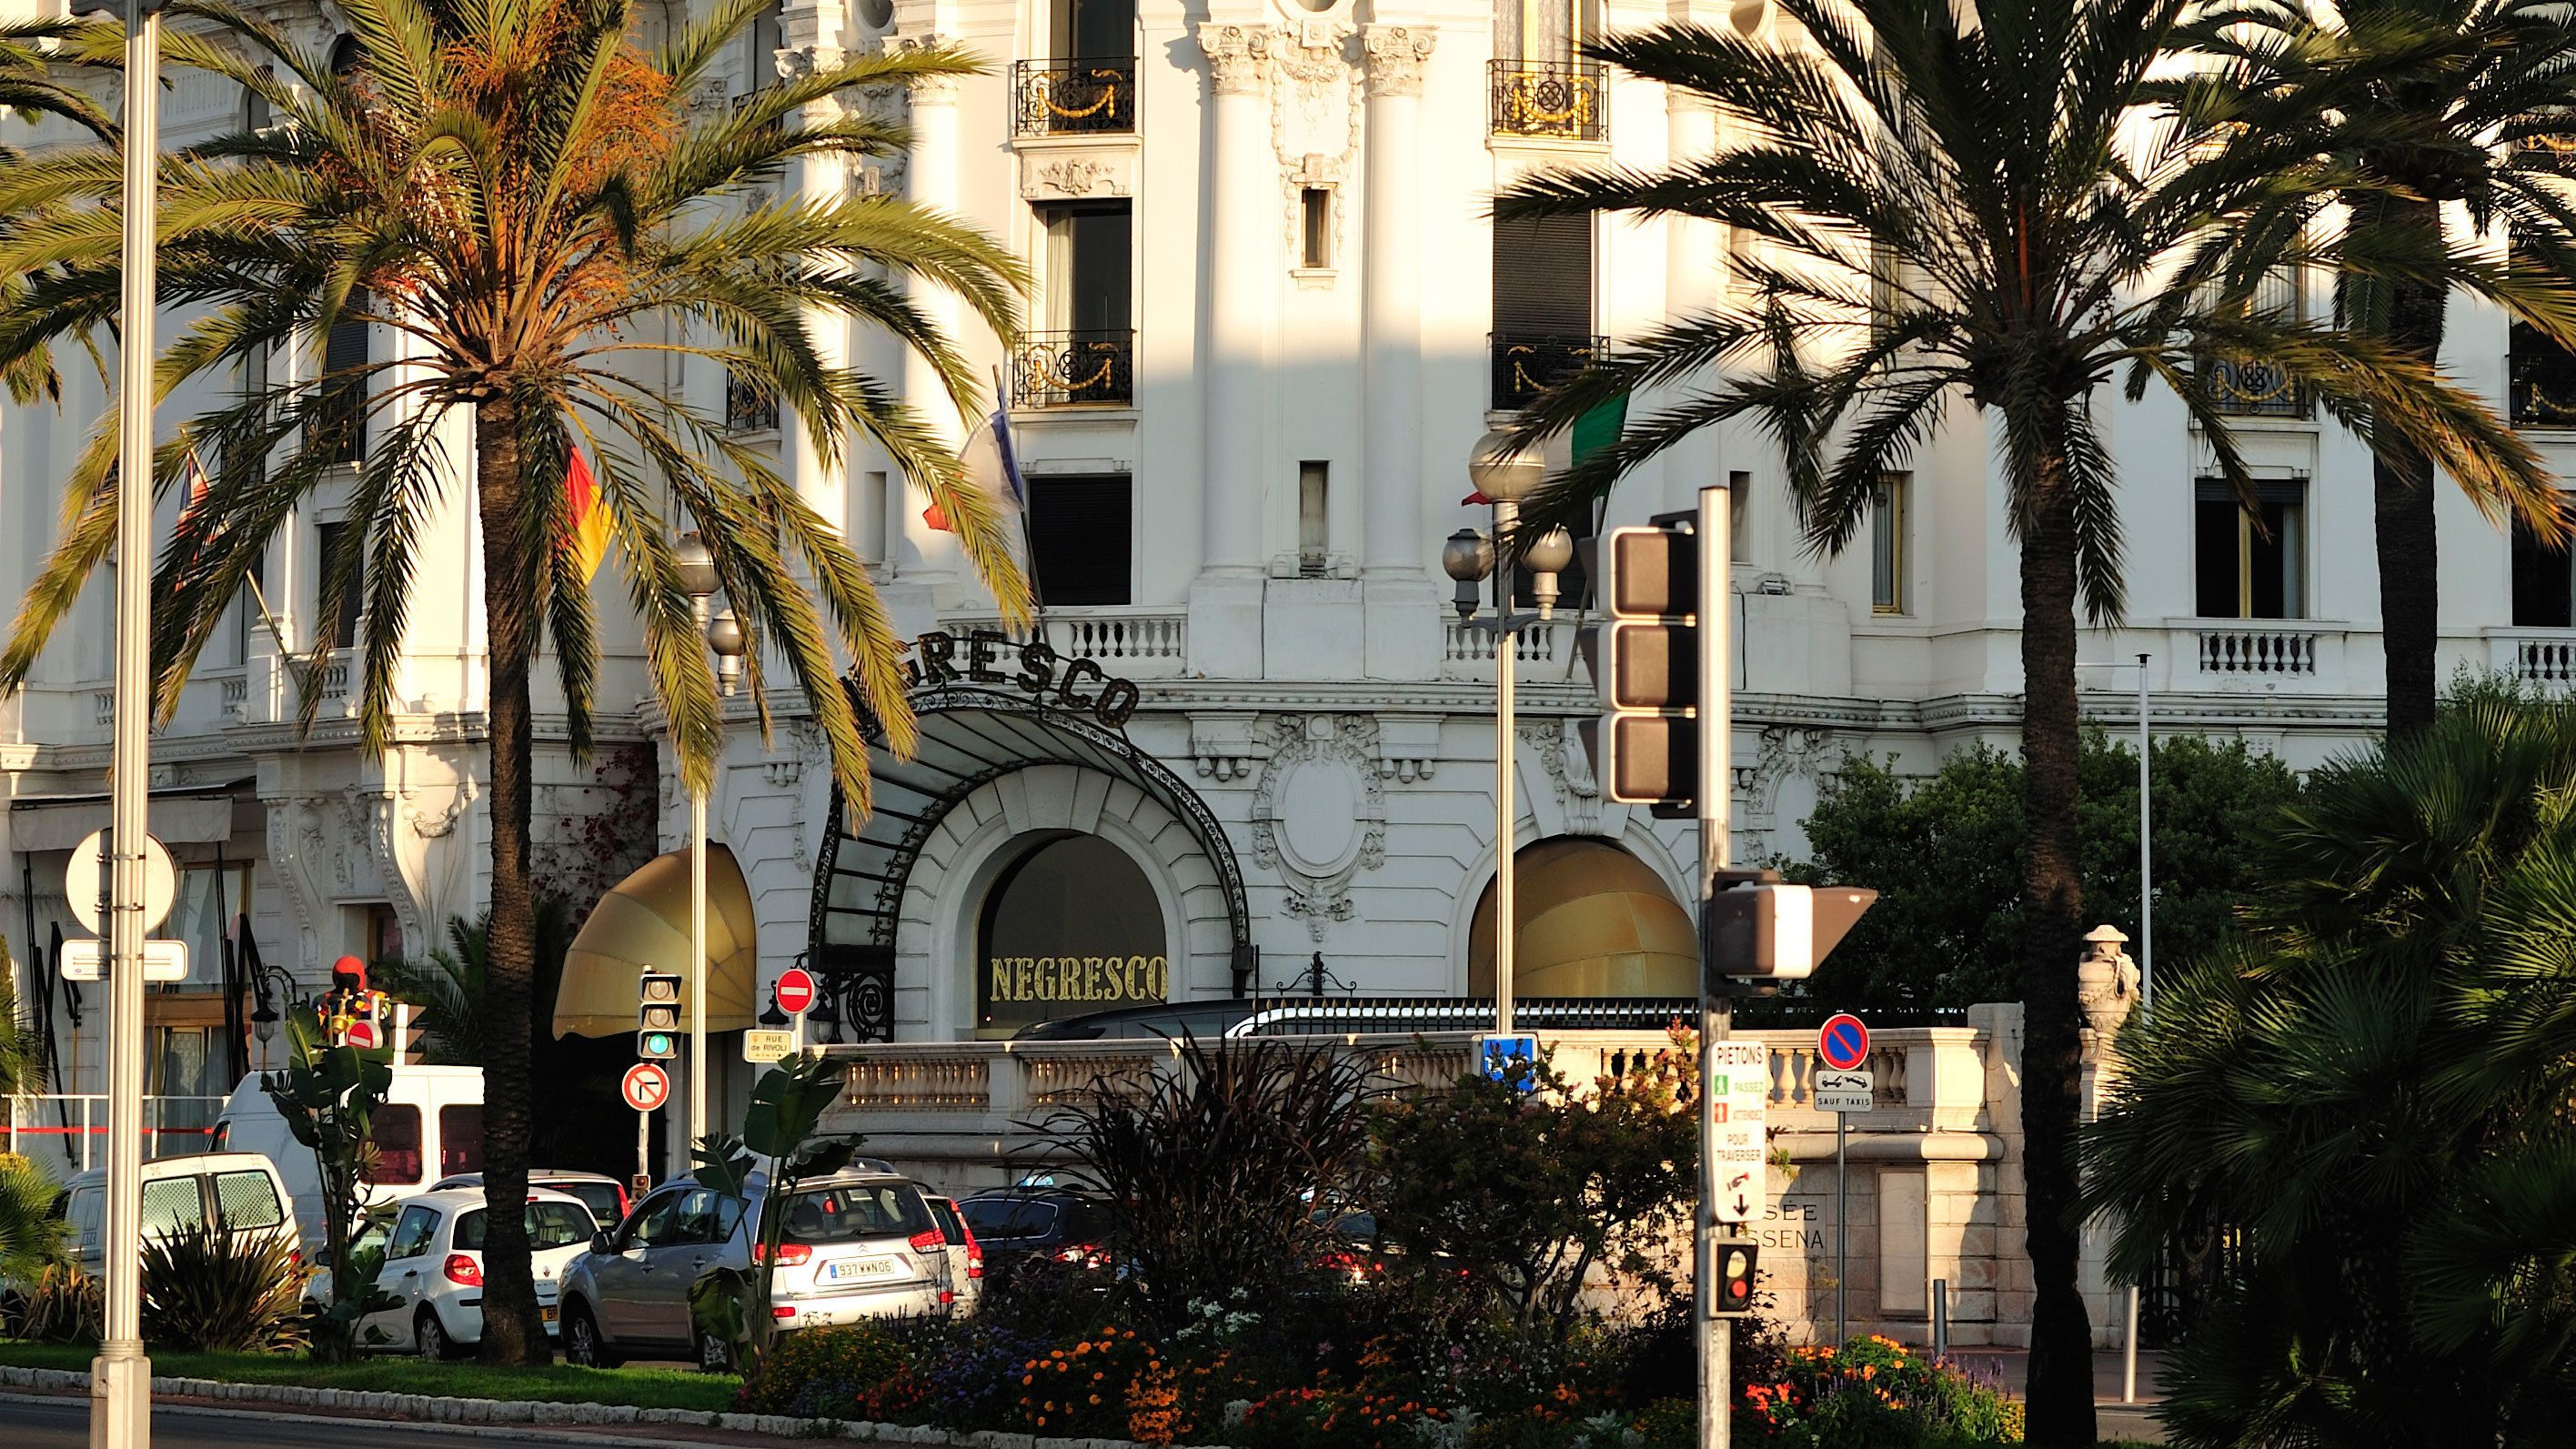 The Nigresco Hotel in Cannes